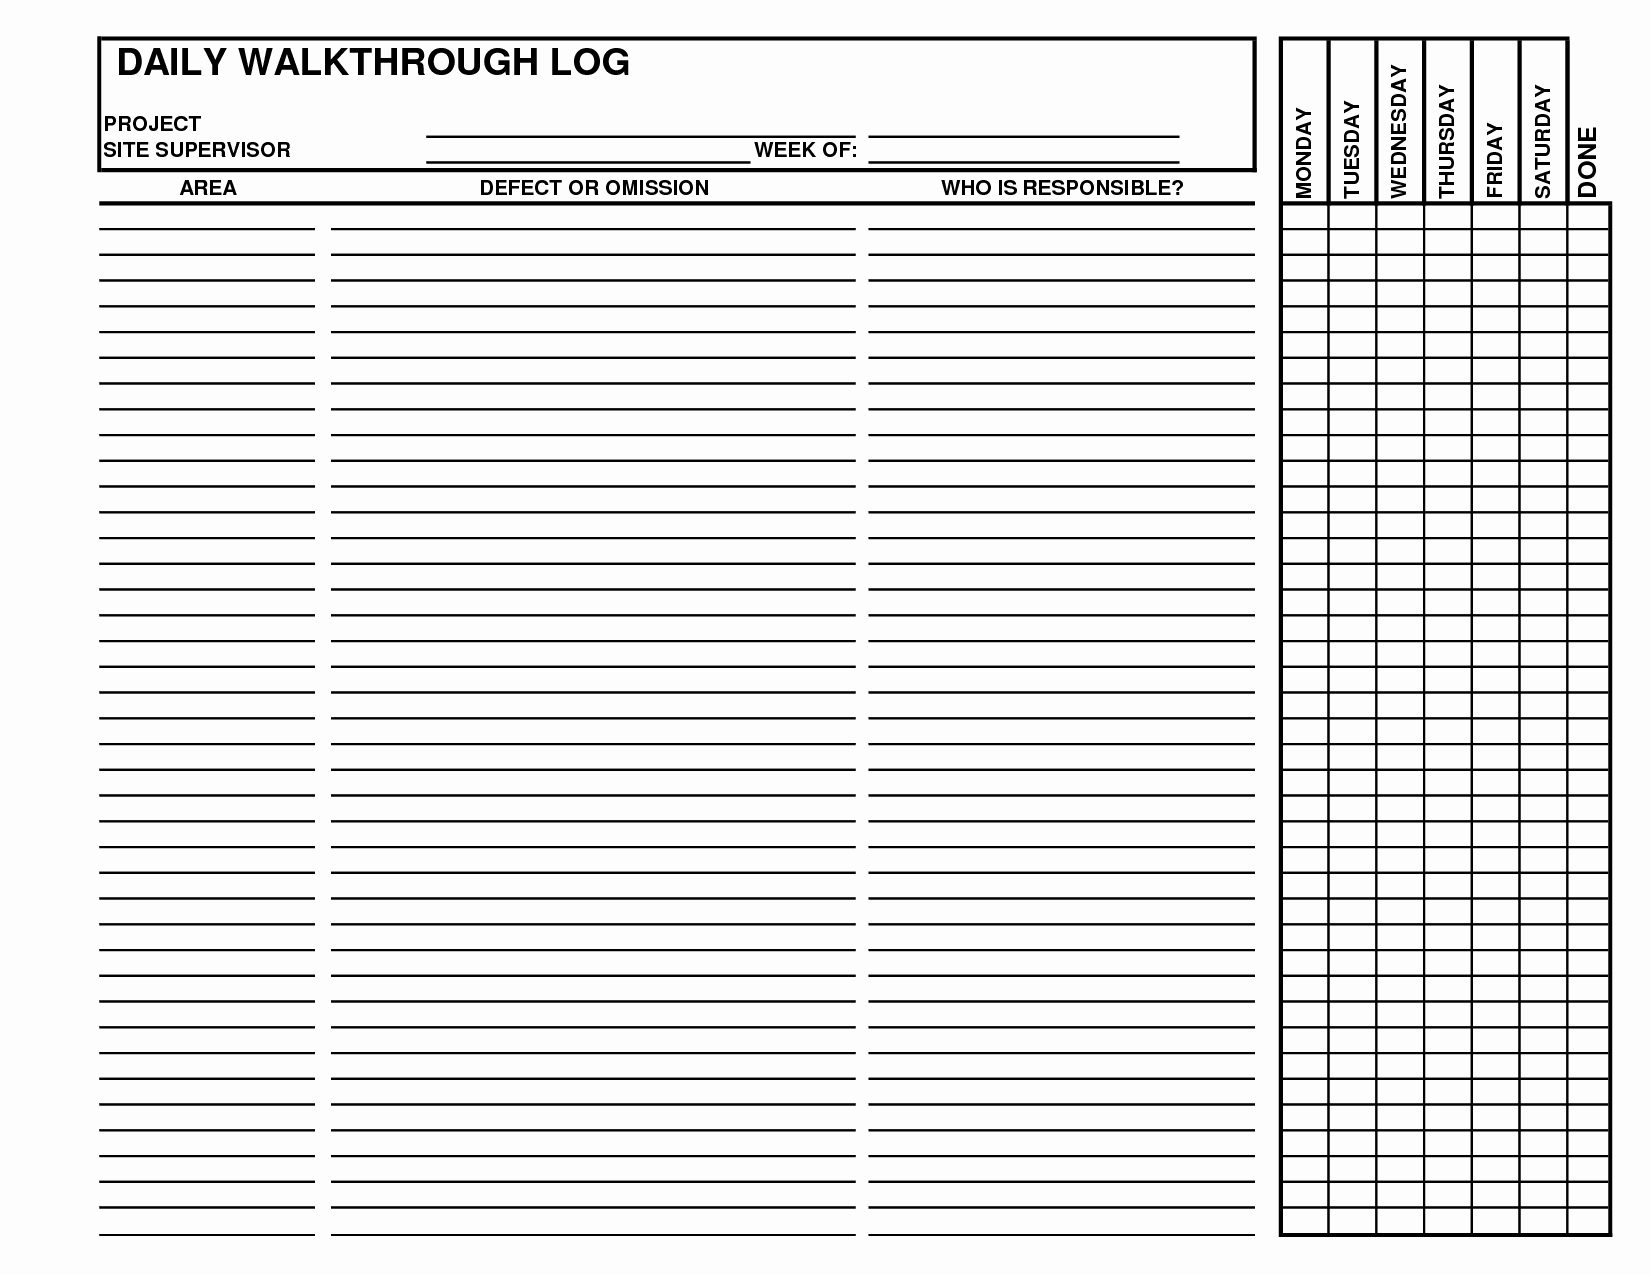 Construction Daily Log Template Beautiful Best S Of Daily Log Examples Daily Log Book